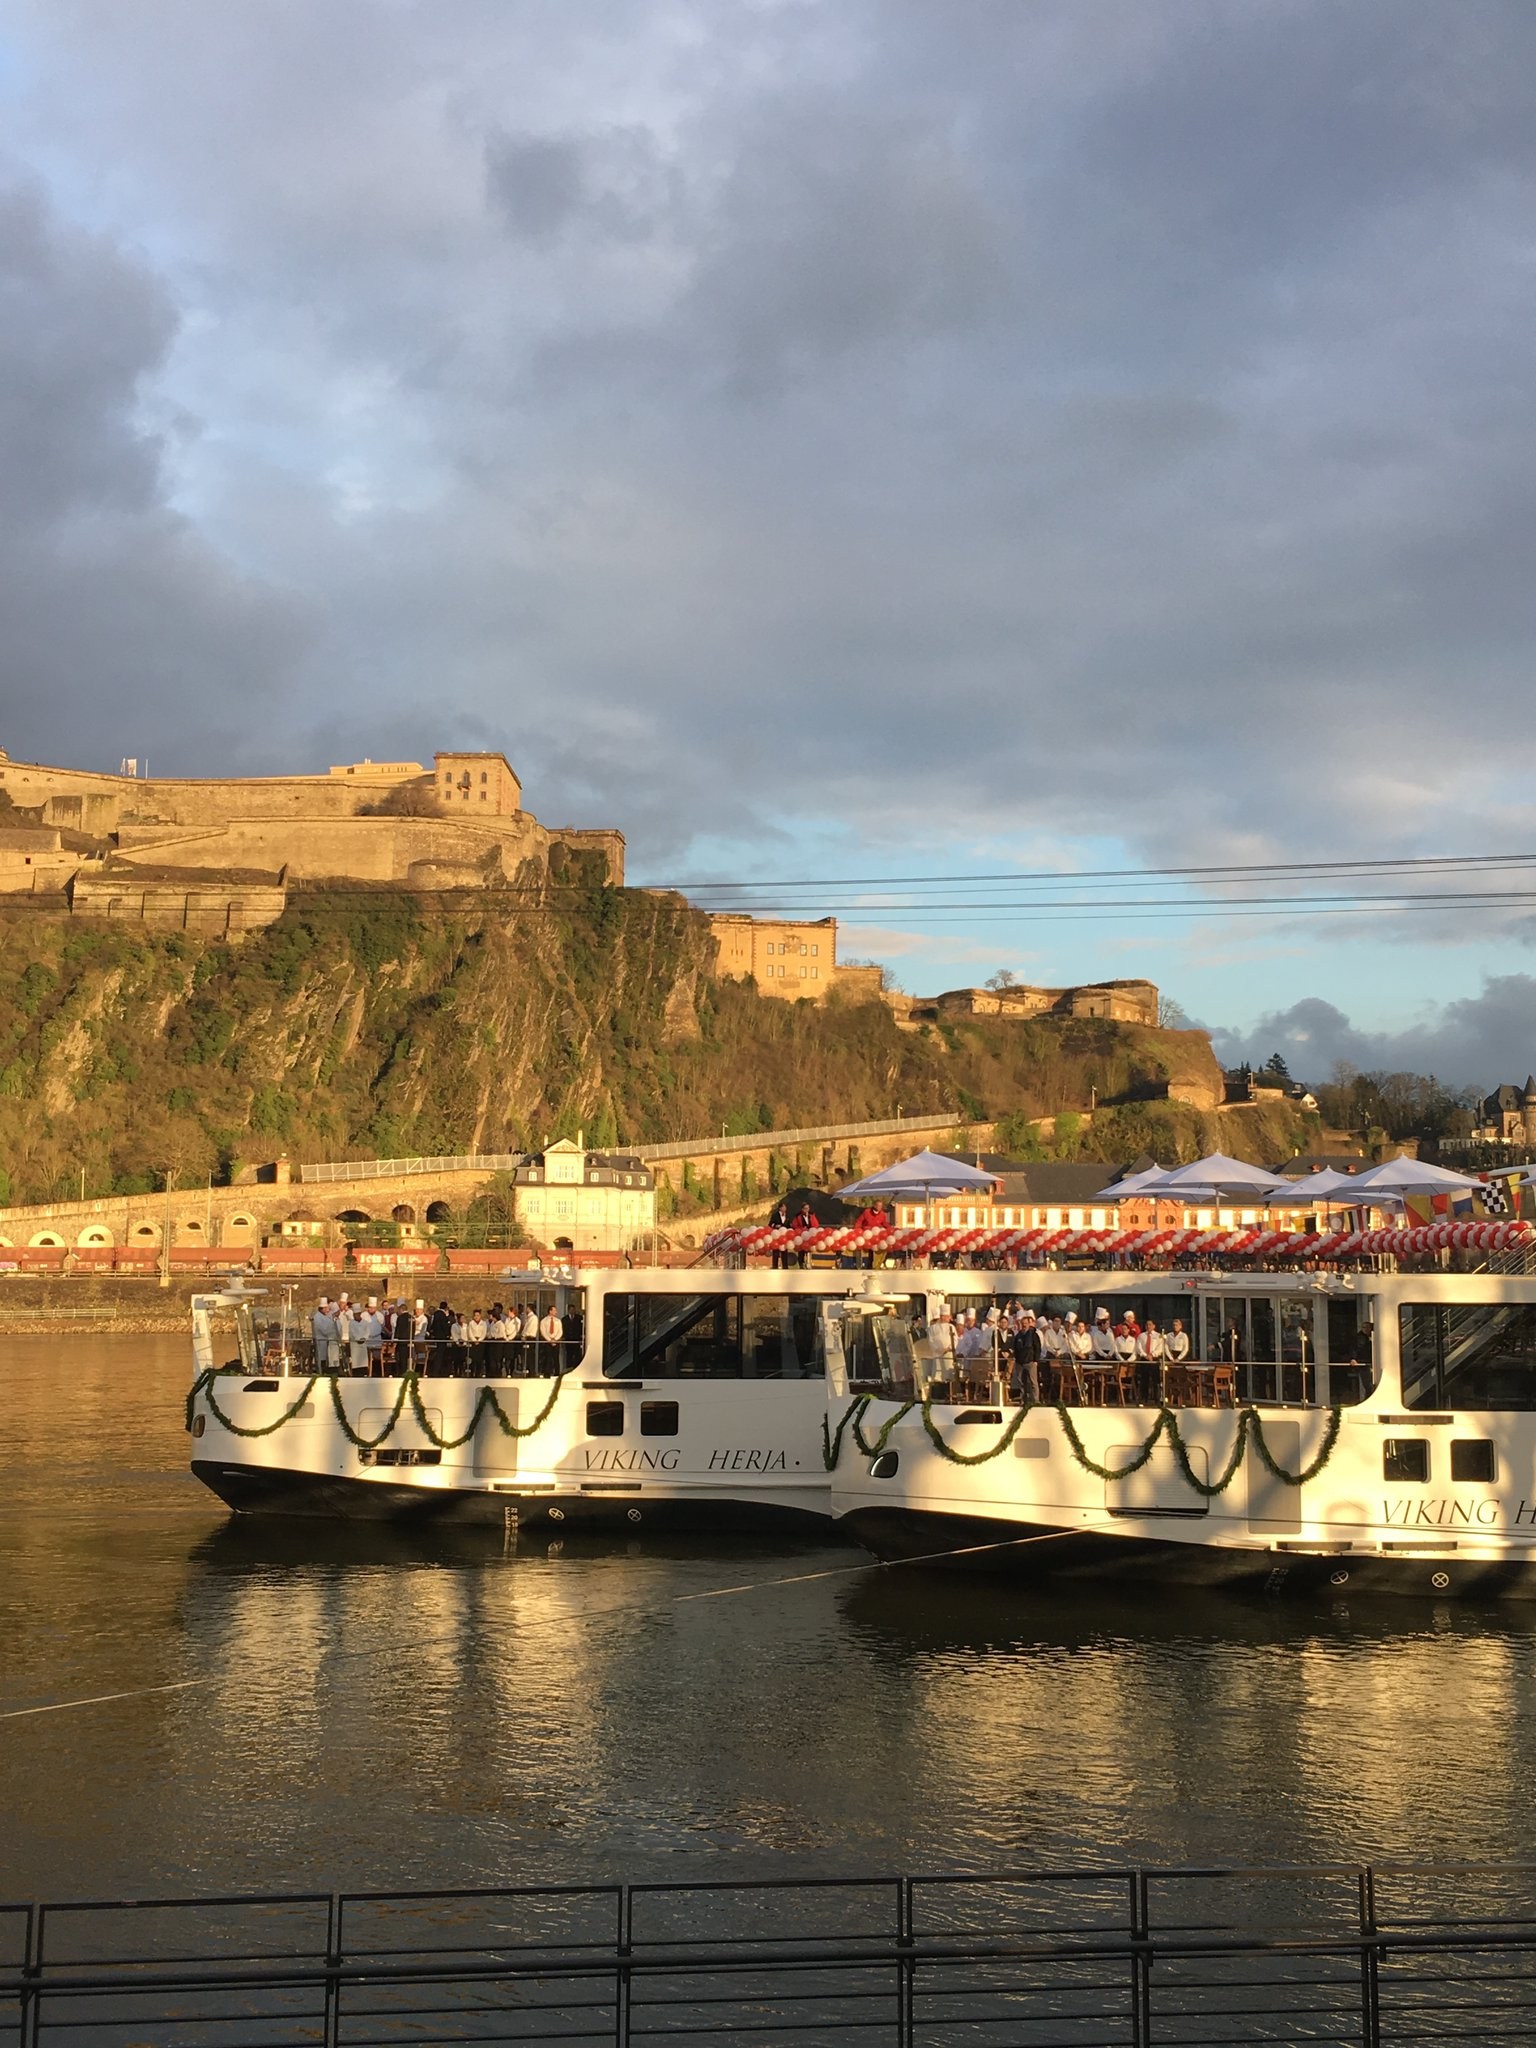 Viking River Cruises' new longships Viking Herja and Viking Hild in Koblenz, Germany